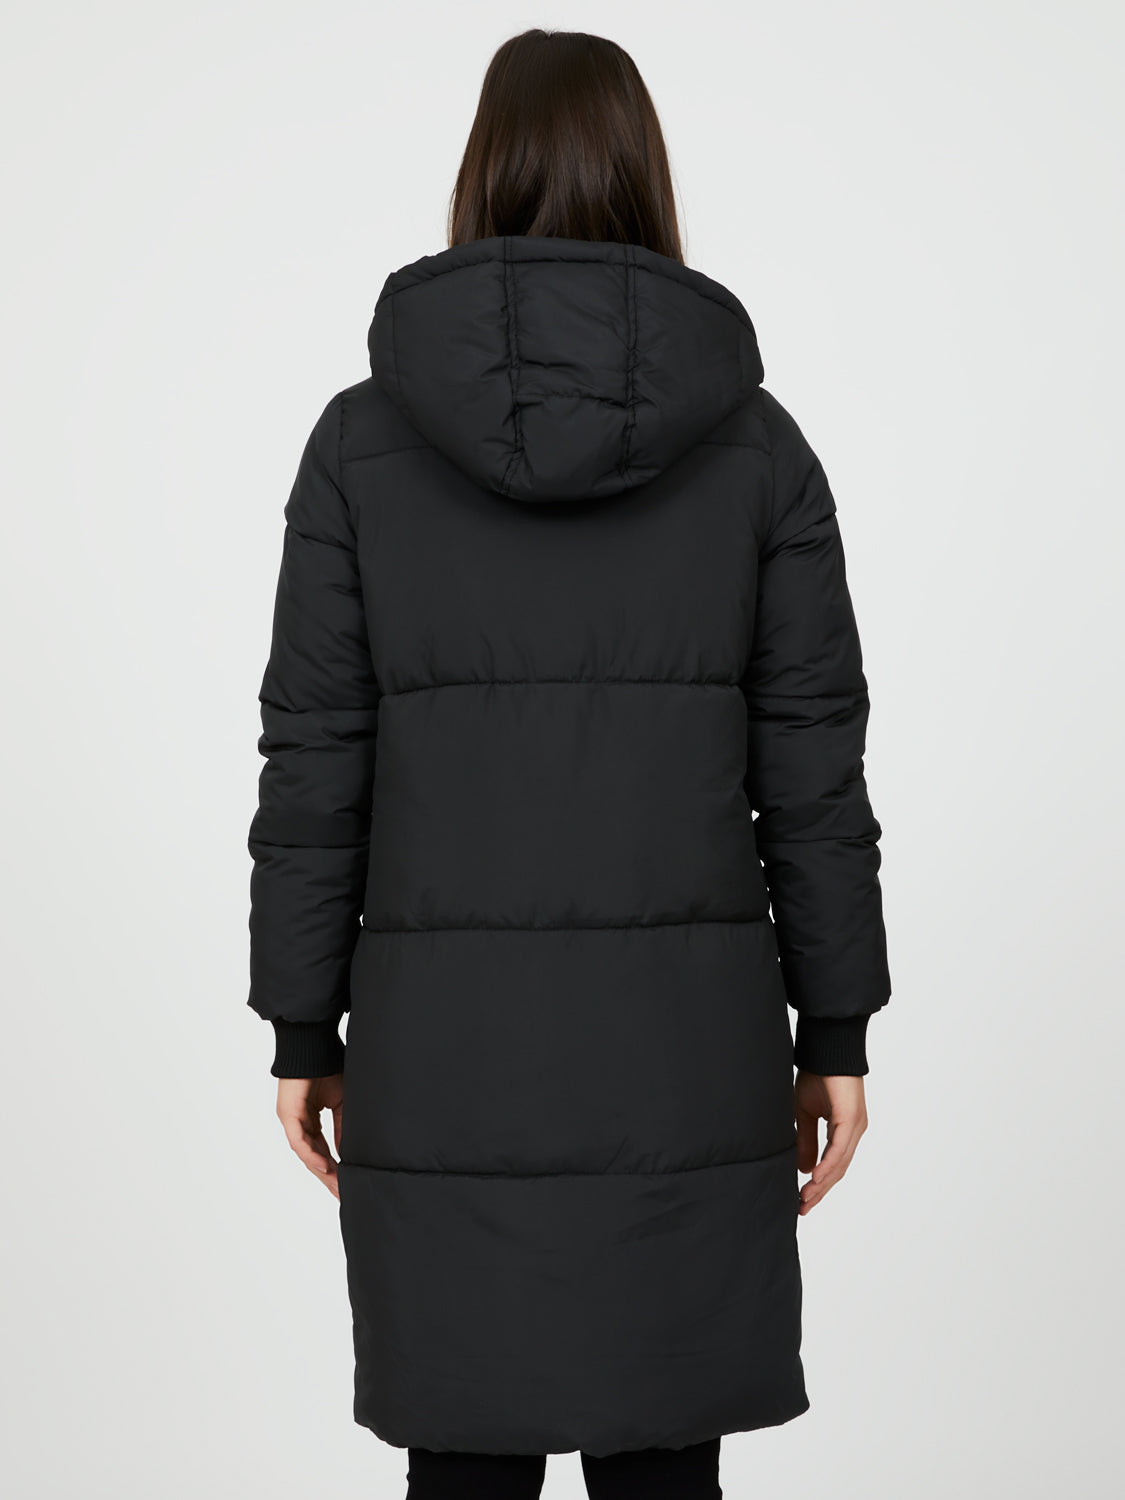 Oversized Long Puffer With Hood